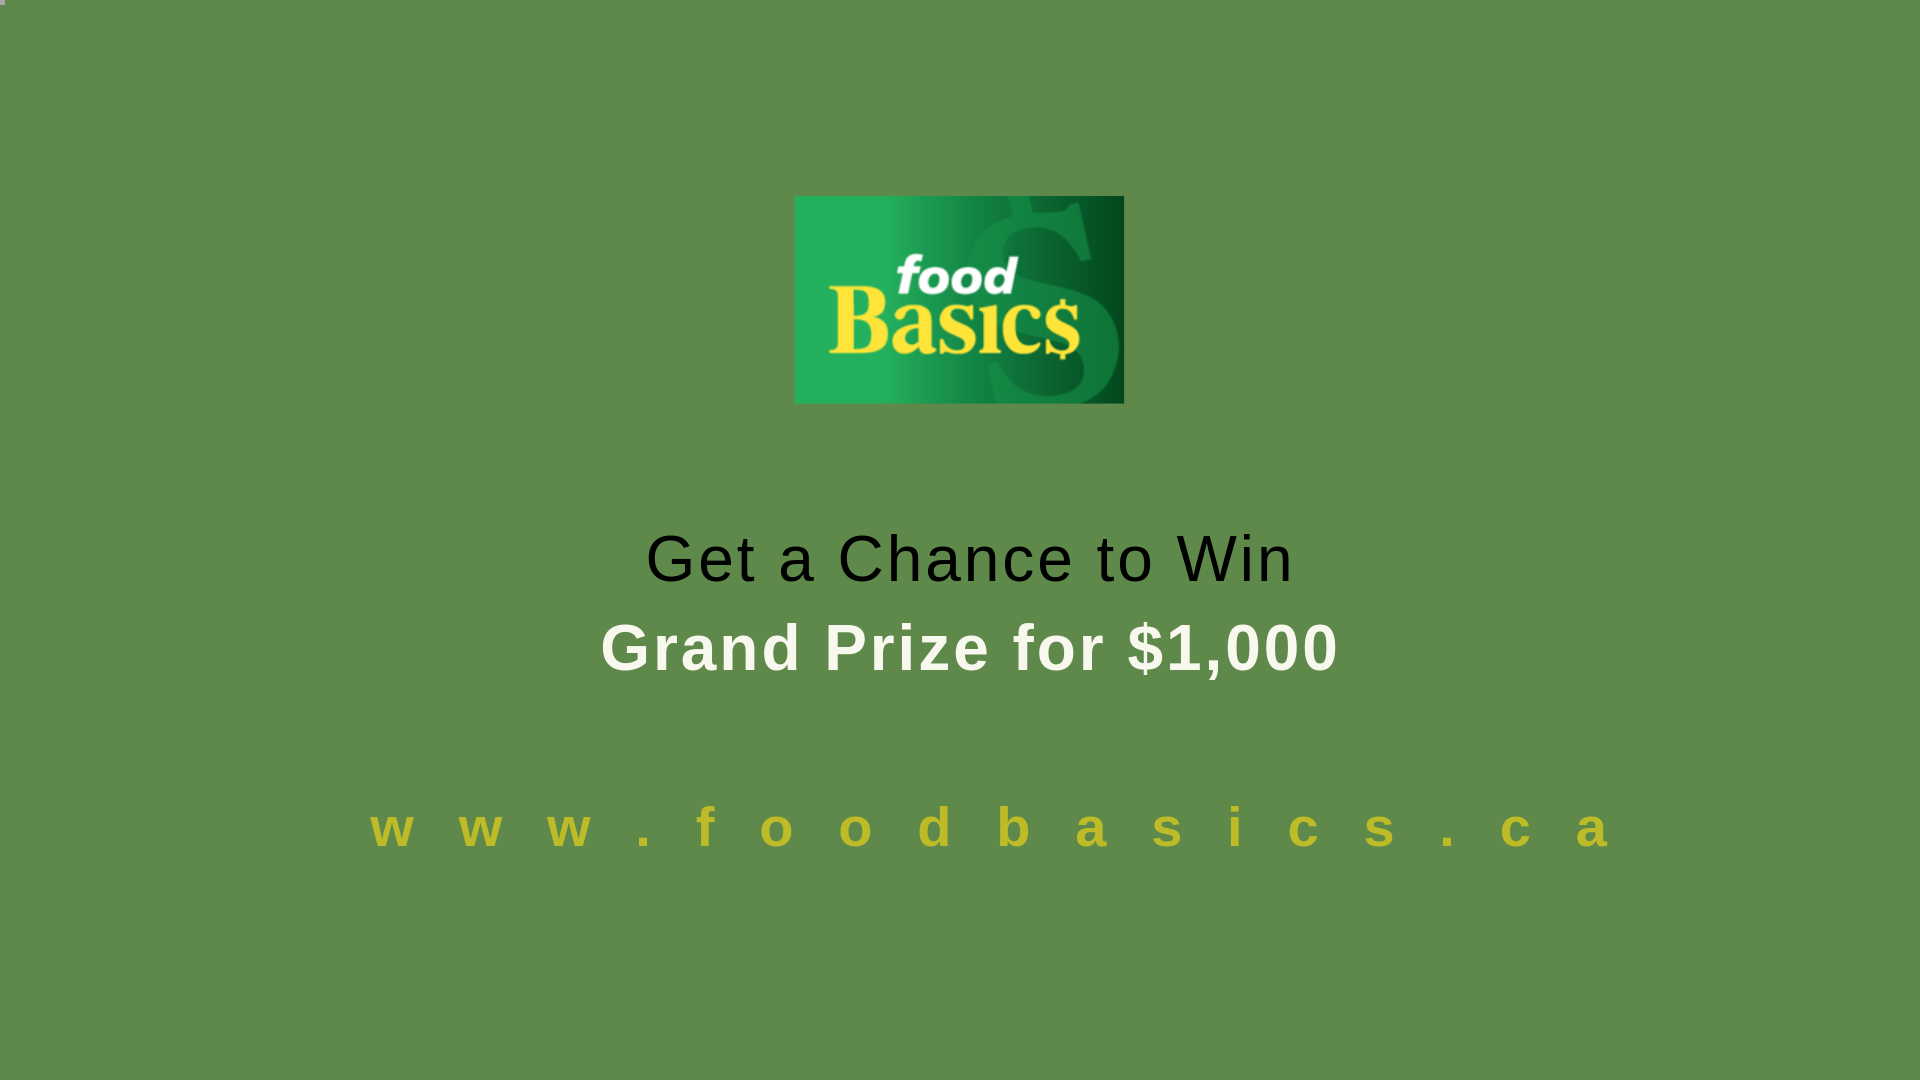 Foodbasicsfeedback | Get a Chance to Win Free Groceries for $1000